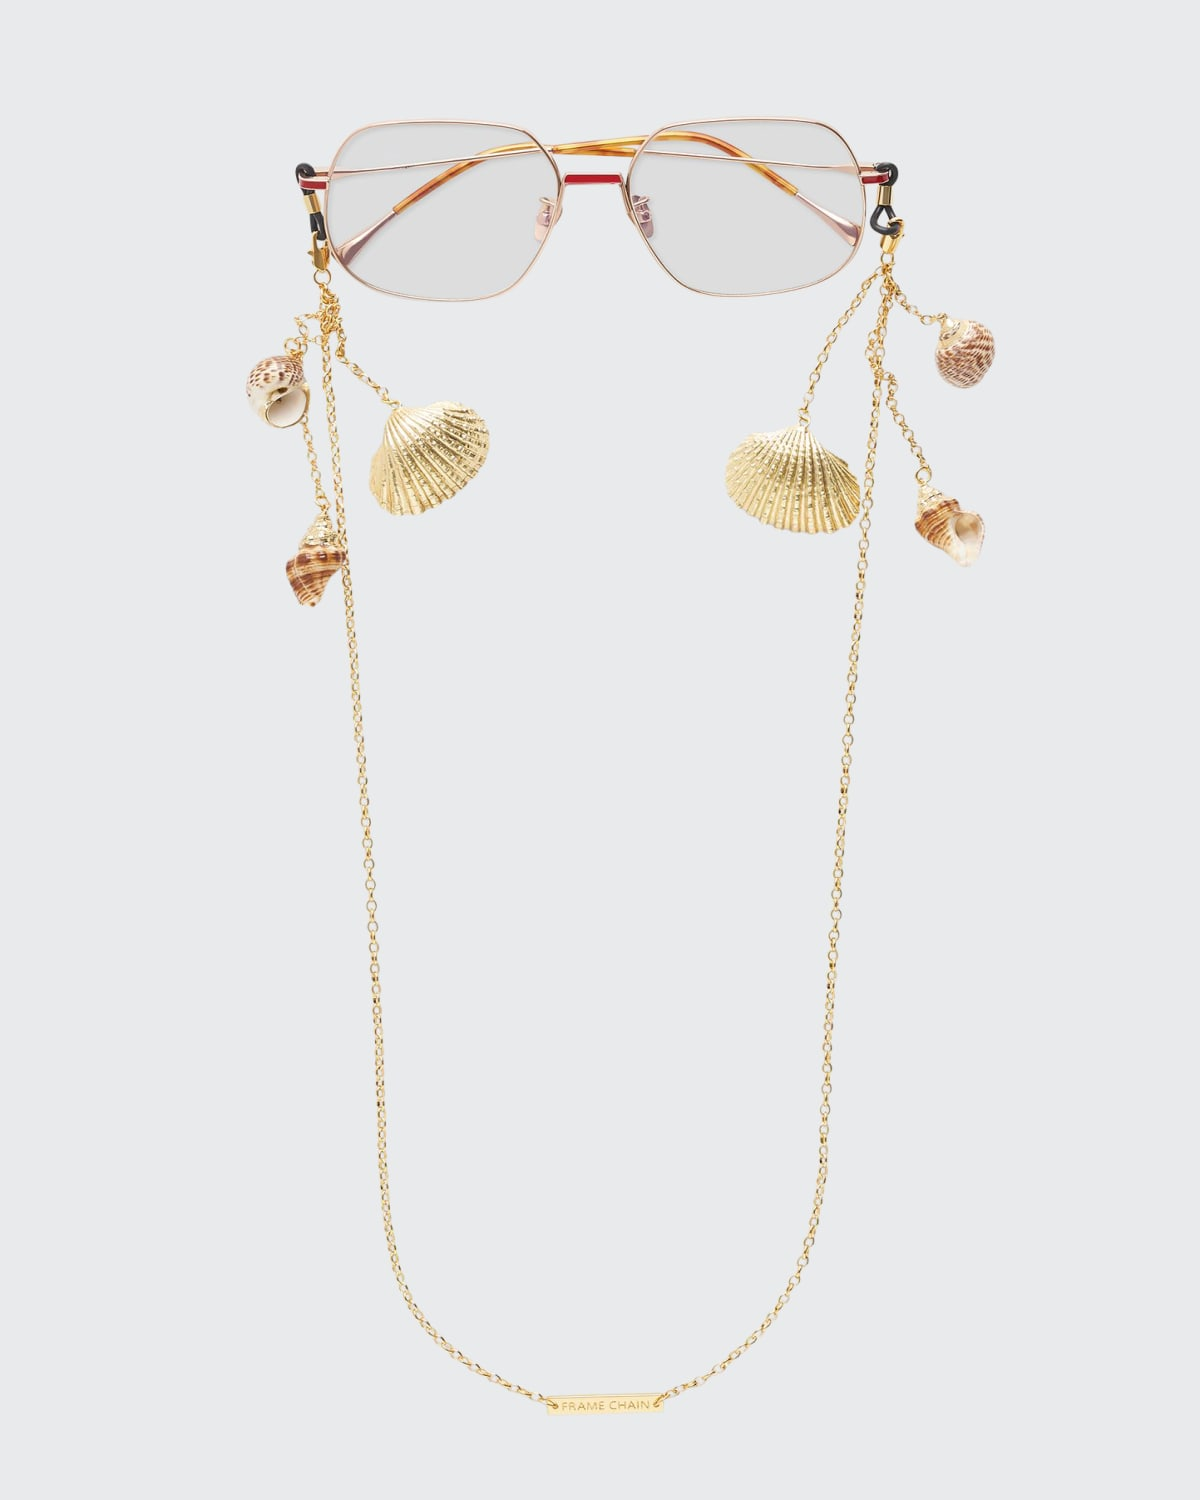 Shellie Conch Chain with Shells